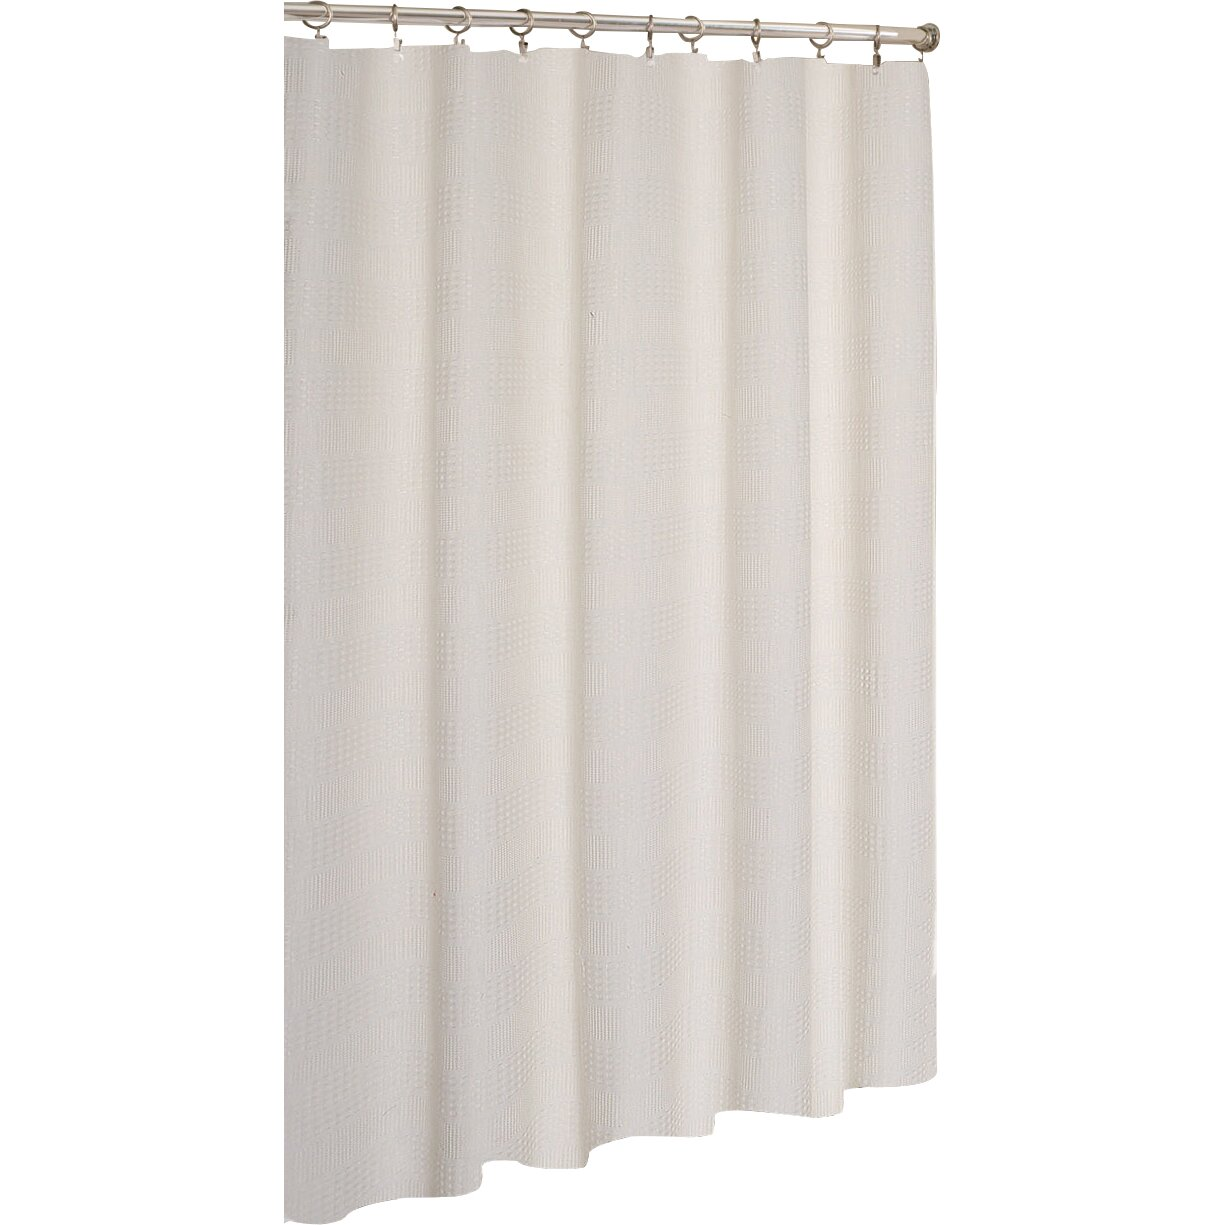 Dainty Home Stripped Hotel Waffle Shower Curtain Reviews Wayfair